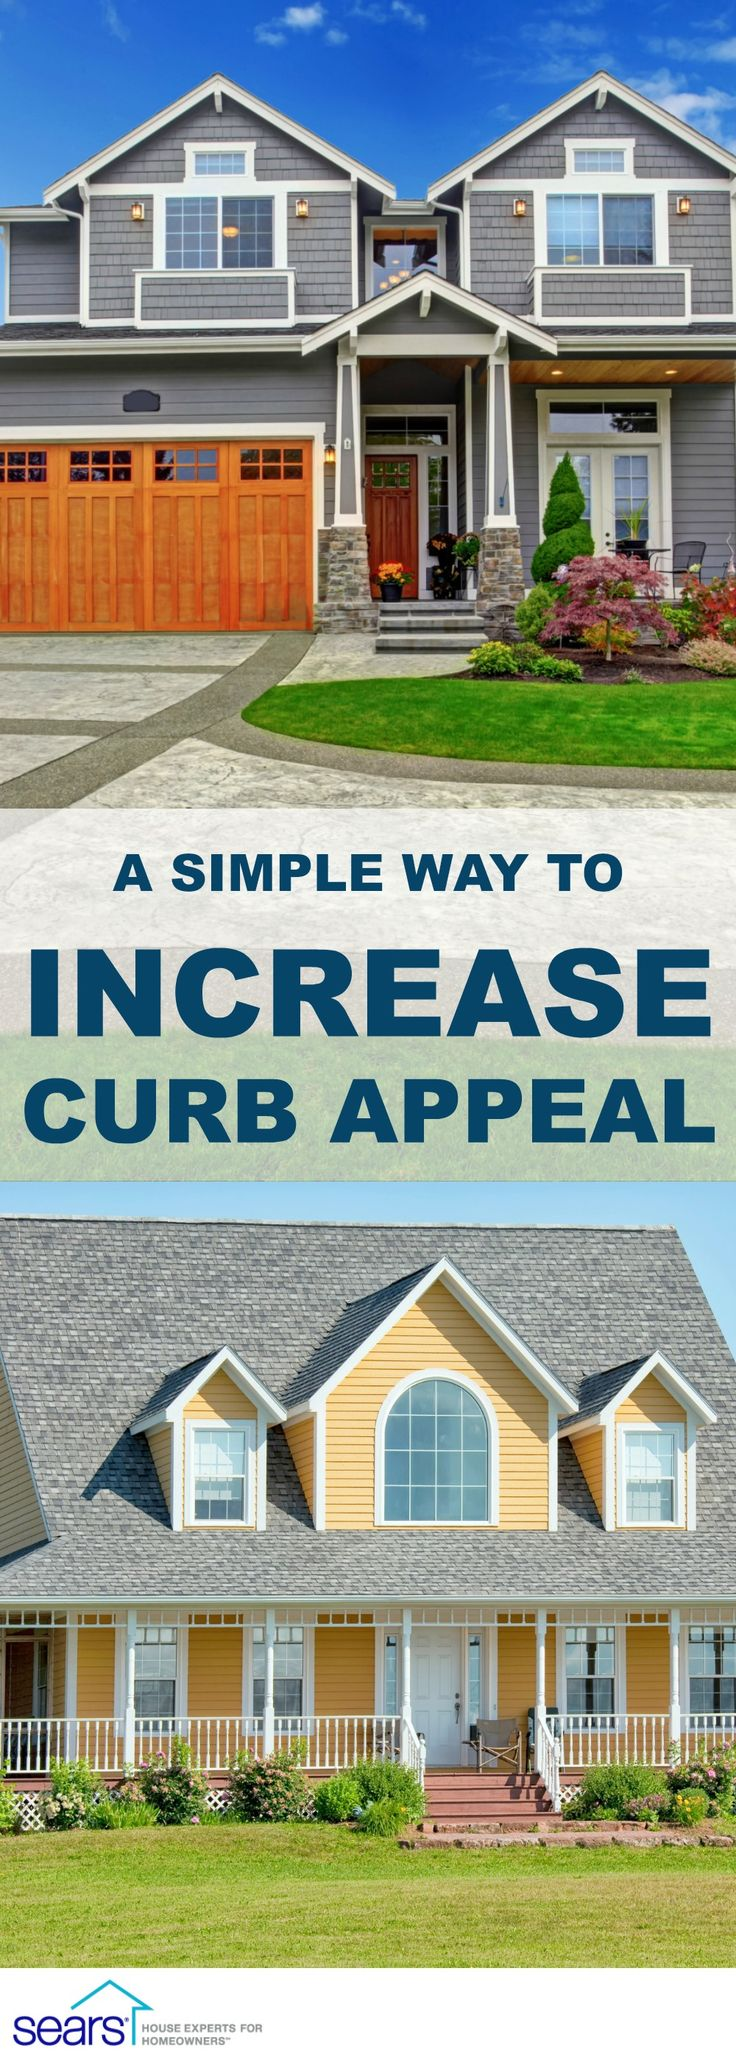 When your home's exterior needs a makeover, siding is an easy and effective way to update it and increase curb appeal. New vinyl siding will give your home a fresh, clean look and can cut down on maintenance, plus you can recoup up to 70% of the costs.